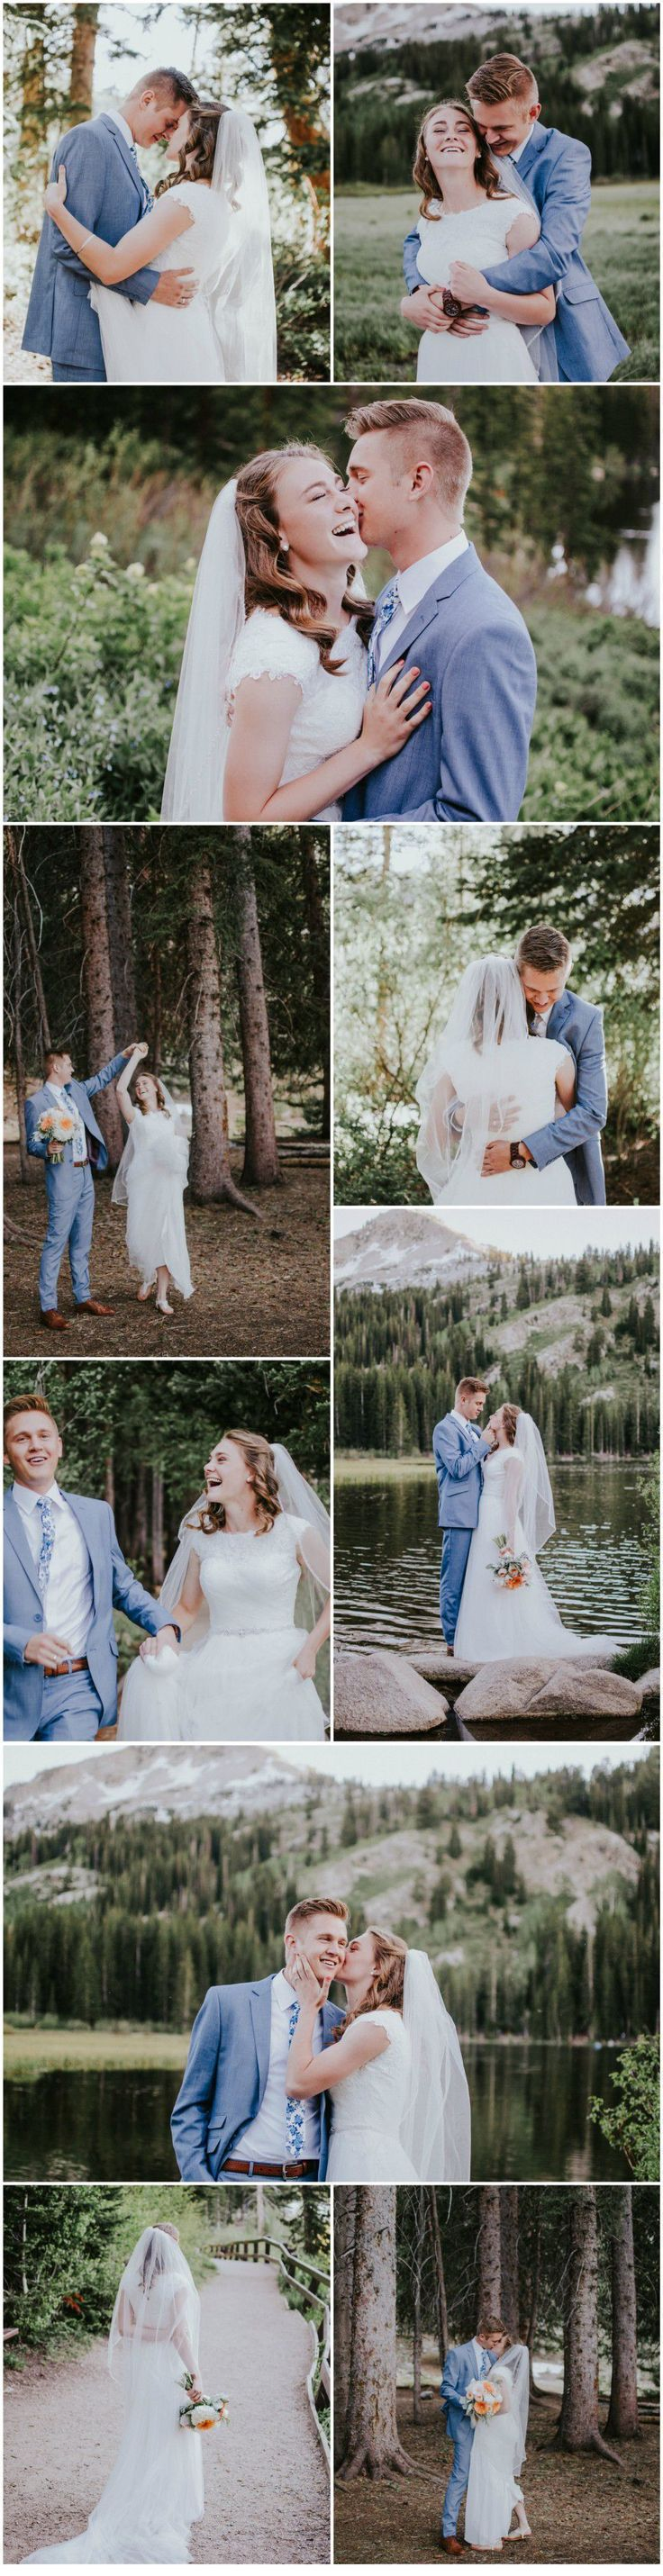 Mountain Outdoor Wedding Photography poses and ideas | Silver lake, authentic smiling, poses! | Simply Amor Photography #elopement #adventureelopement